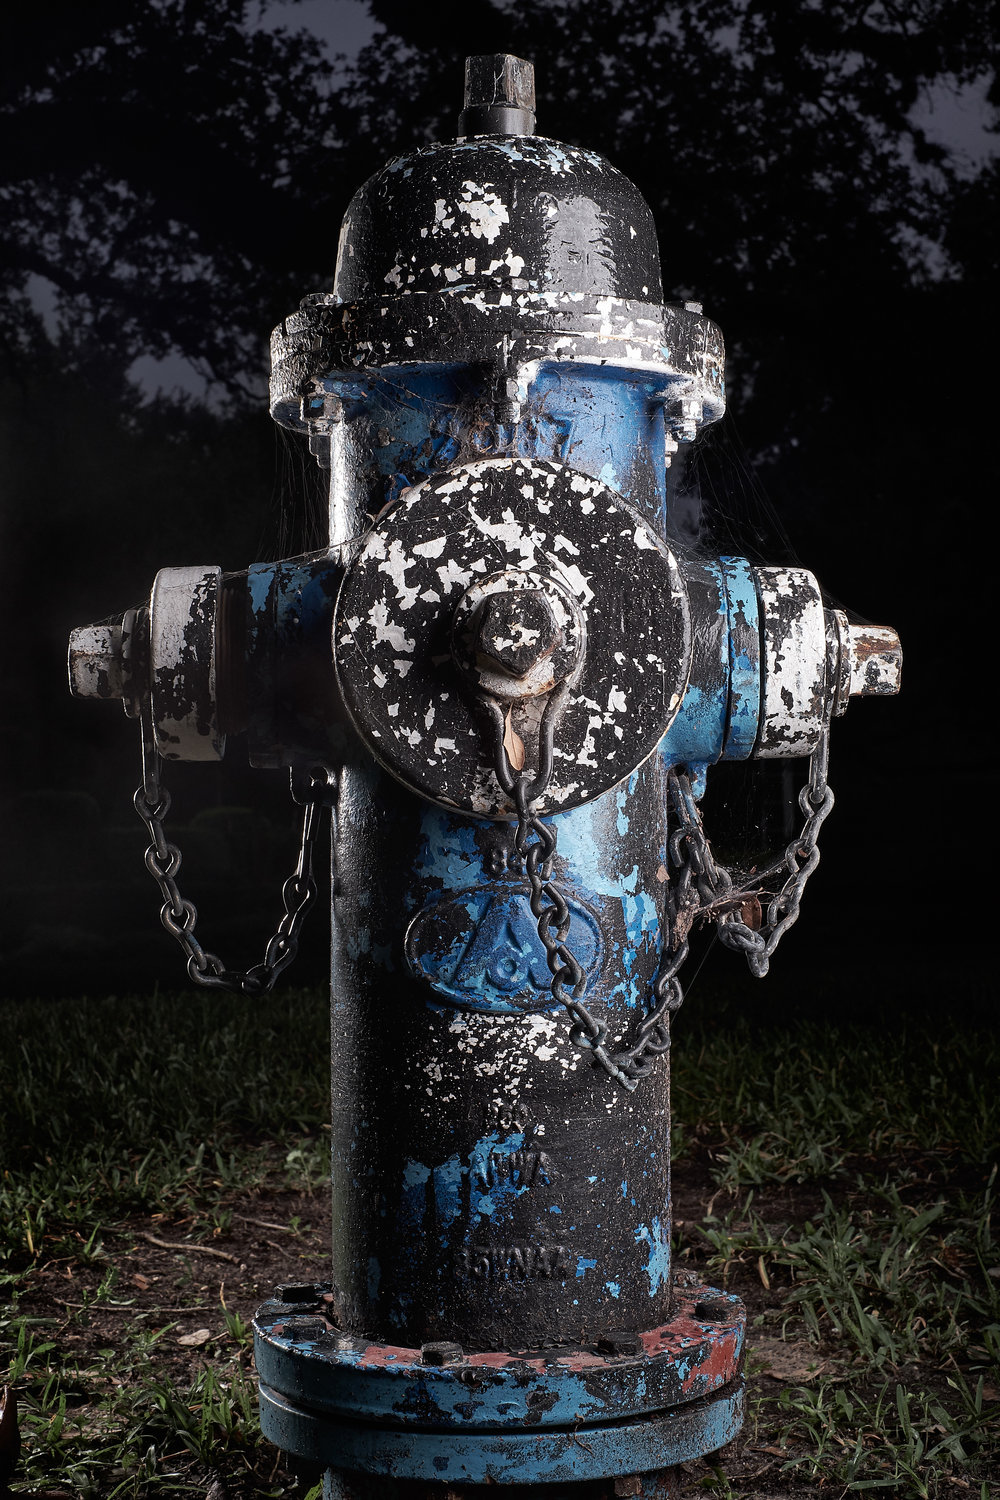 Hydrant Portrait #57